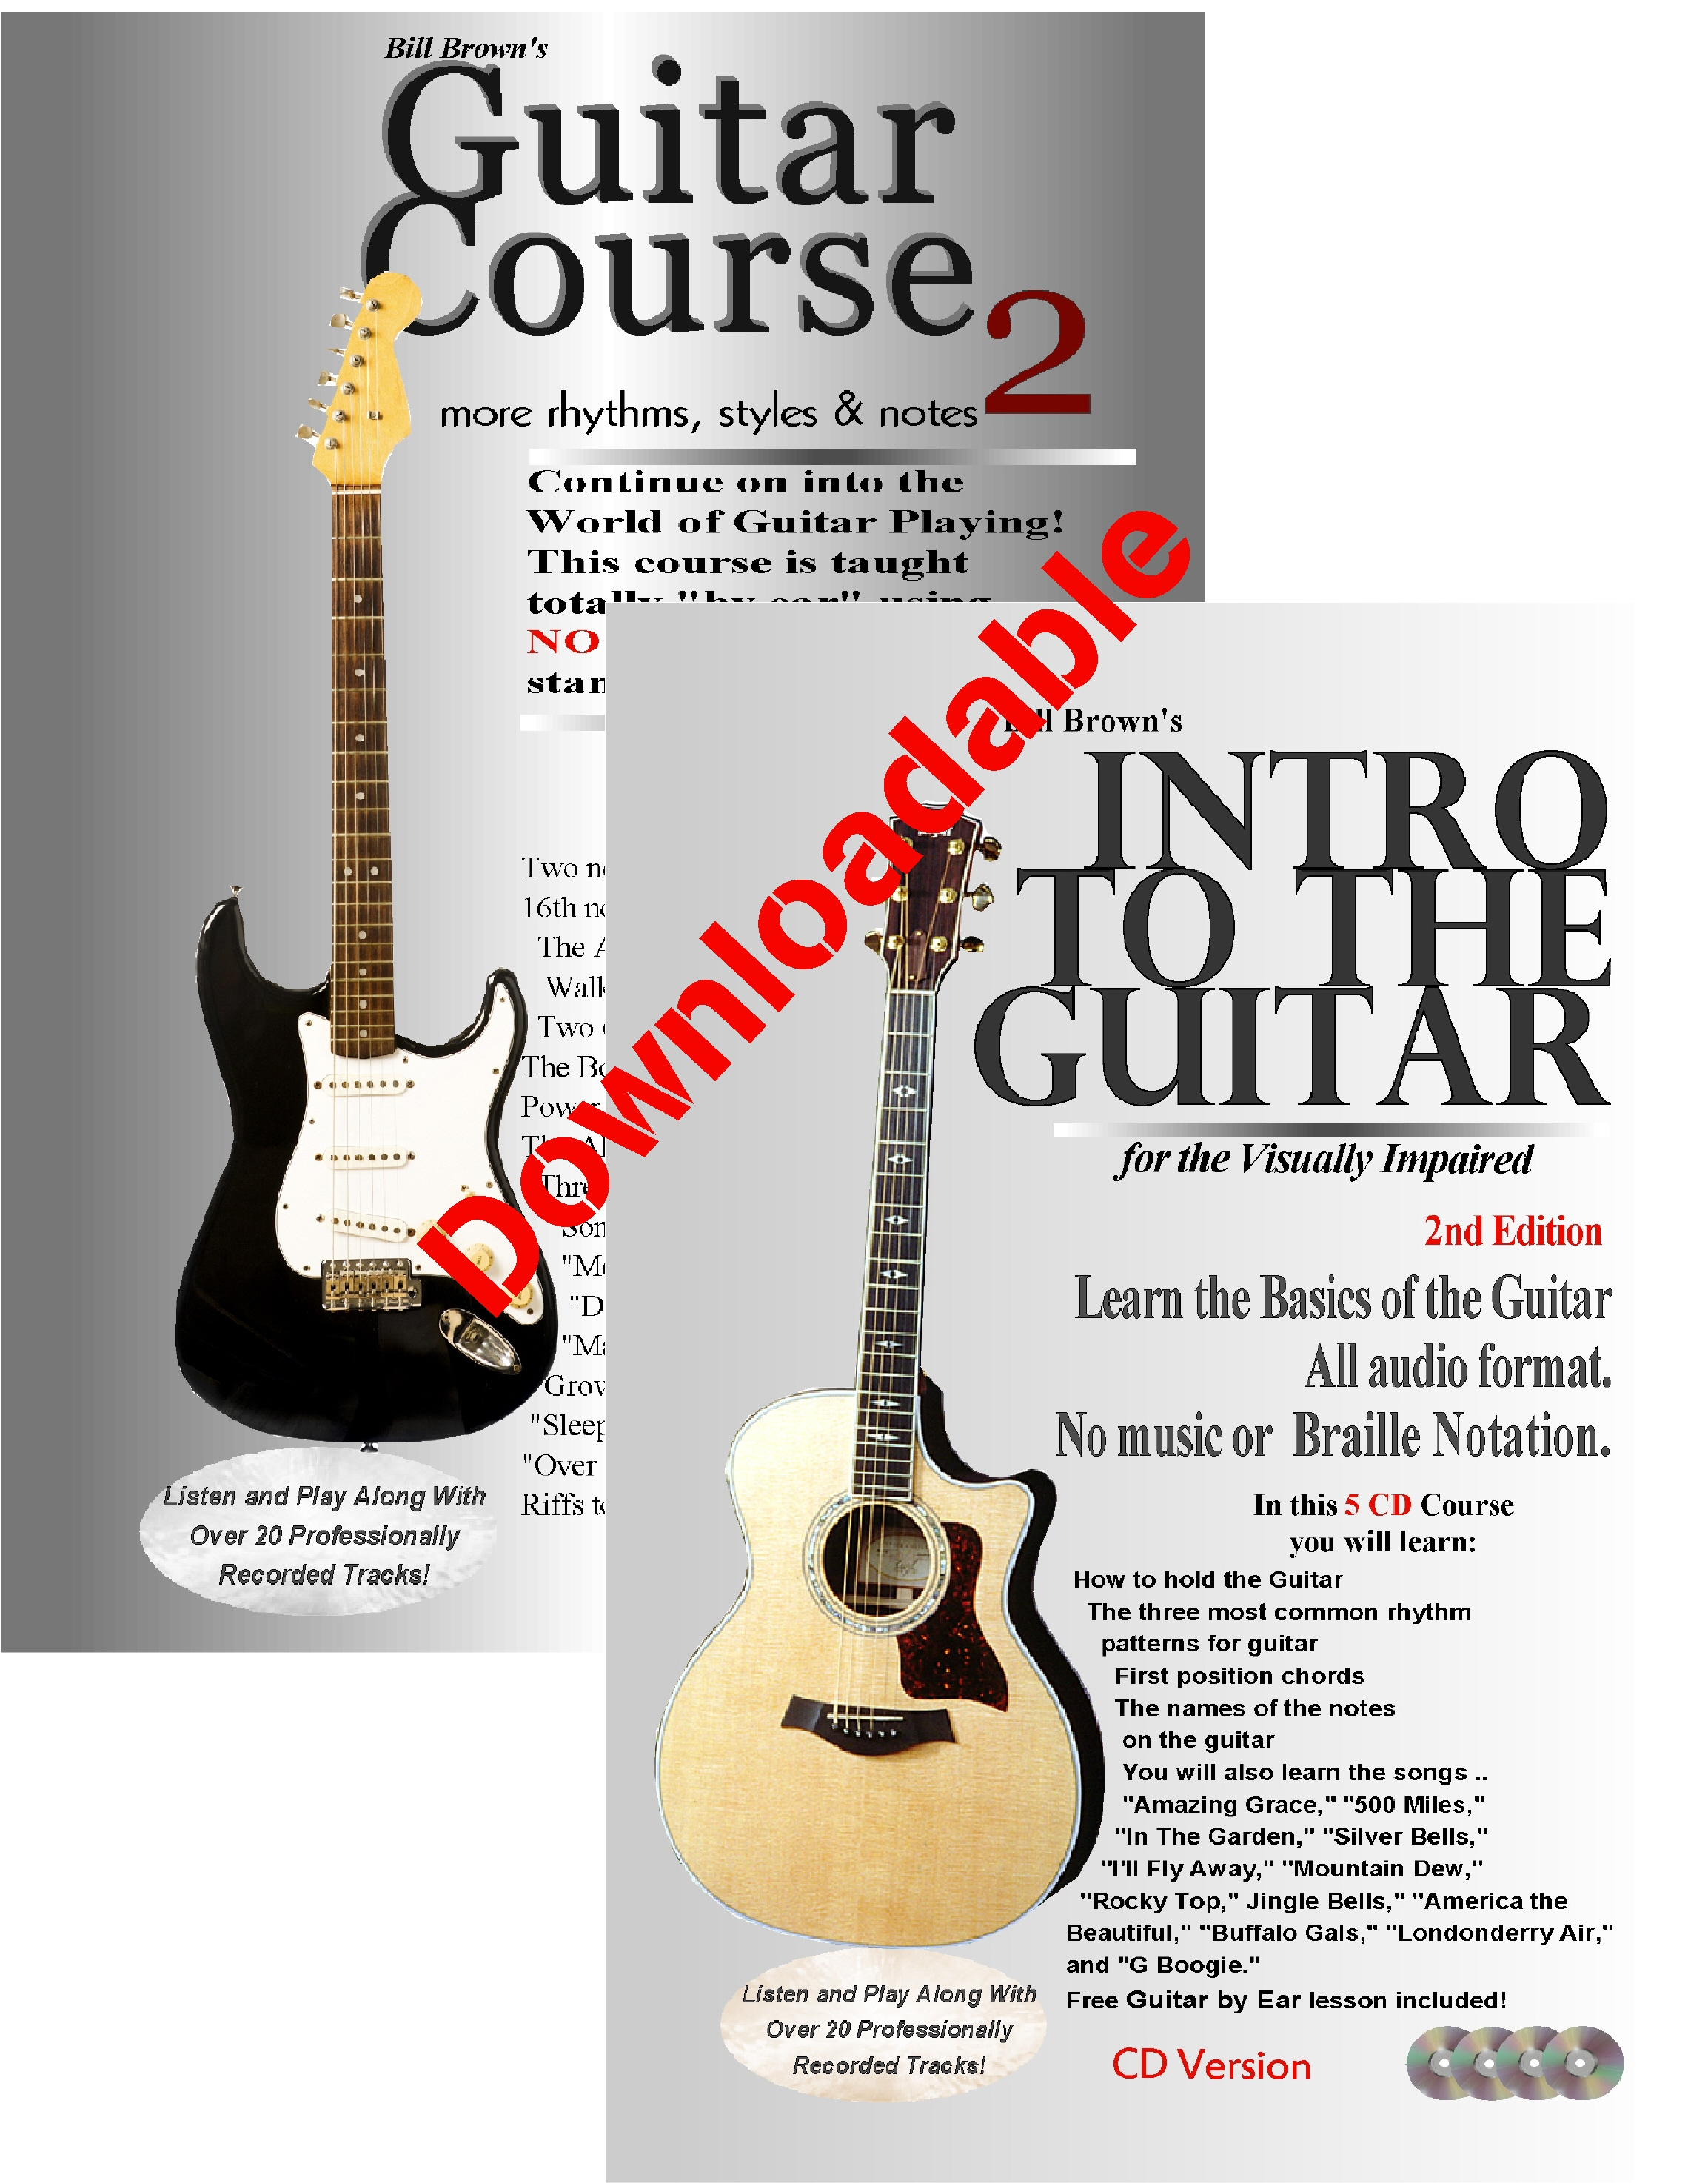 Intro to the Guitar for the Visually Impaired and Guitar Course 2 (Downloadable)